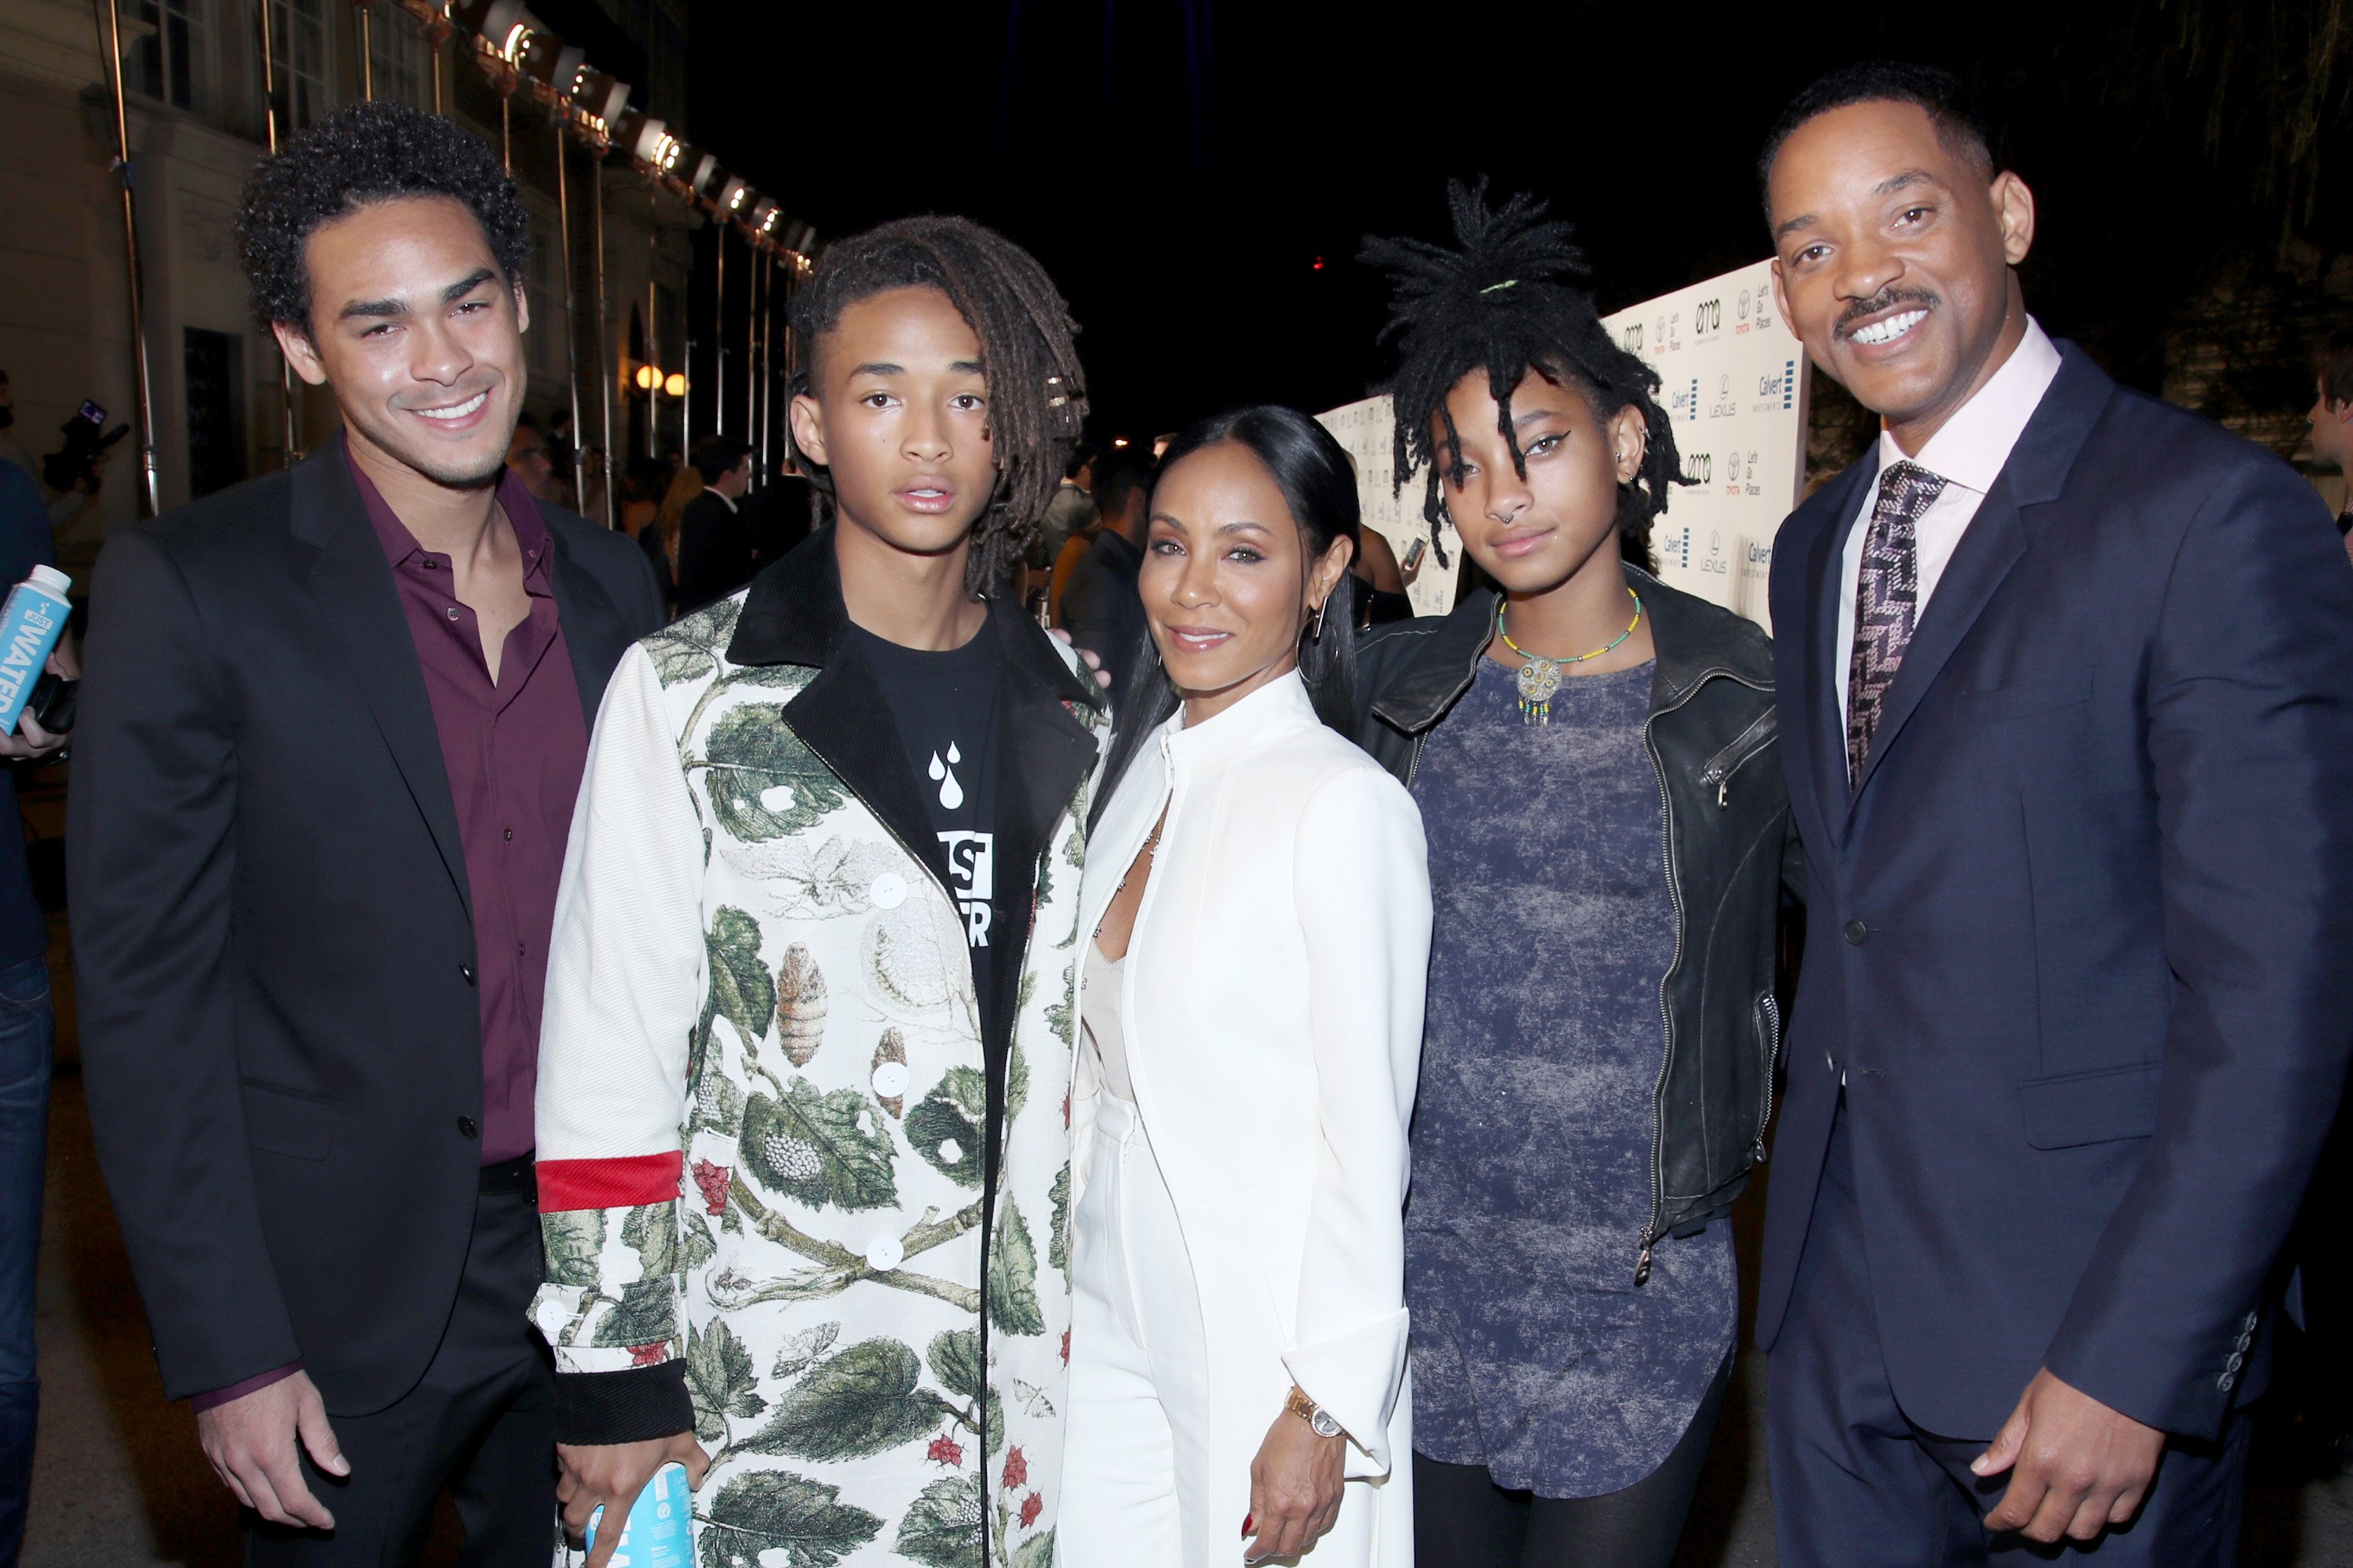 Trey, Jaden, Jada, Willow, and Will at  the Environmental Media Association 26th Annual EMA Awards on October 22, 2016 in Burbank | Photo: Getty Images